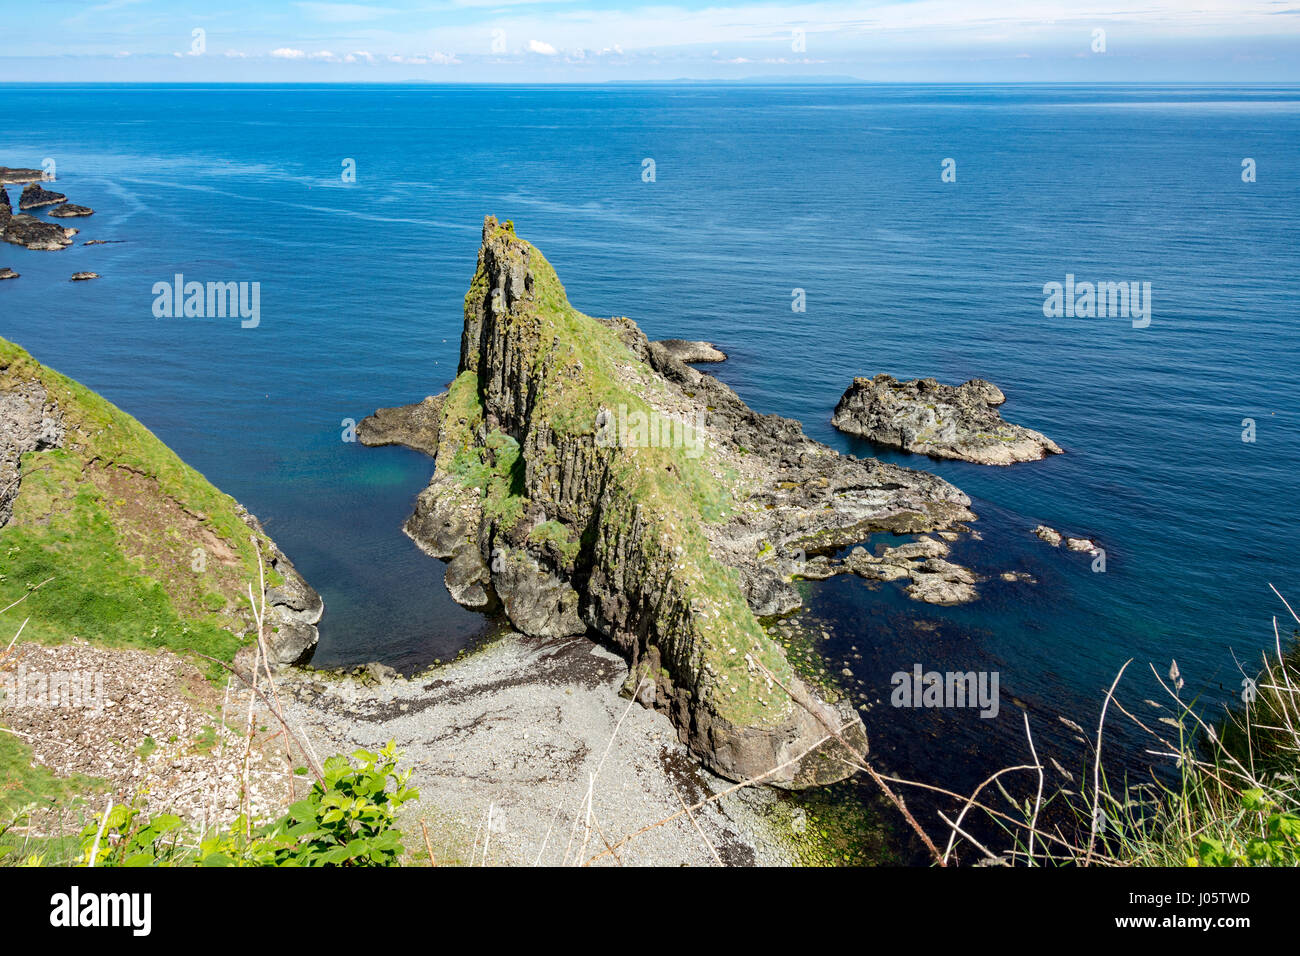 Cliff scenery at Port Moon, from the Causeway Coast footpath, County Antrim, Northern Ireland, UK Stock Photo